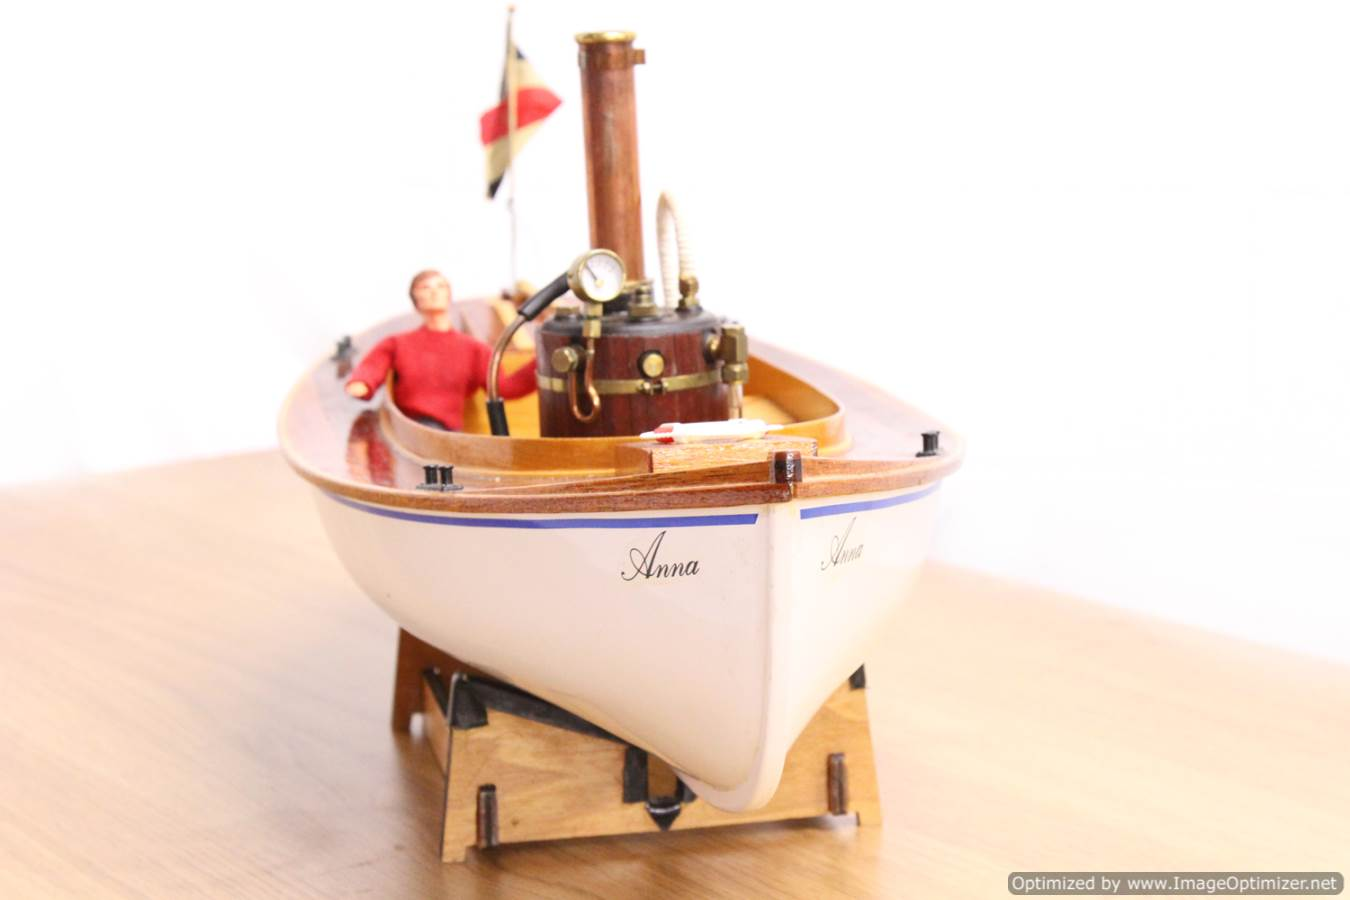 test anna-cheddar-steam-boat-live-steam-model-for-sale-04-optimized